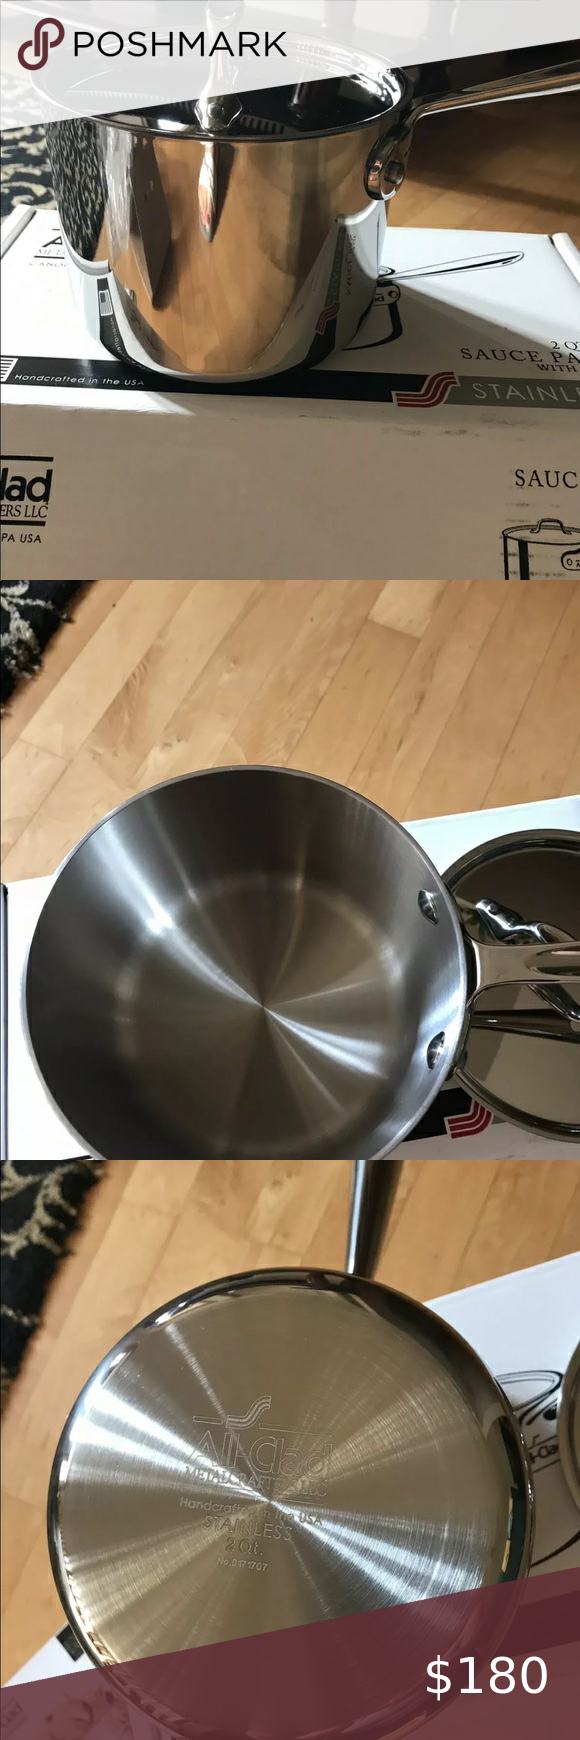 All Clad Stainless Steel Tri Ply 2 Qt Sauce Pan All Clad Stainless Steel All clad 2 qt saucier